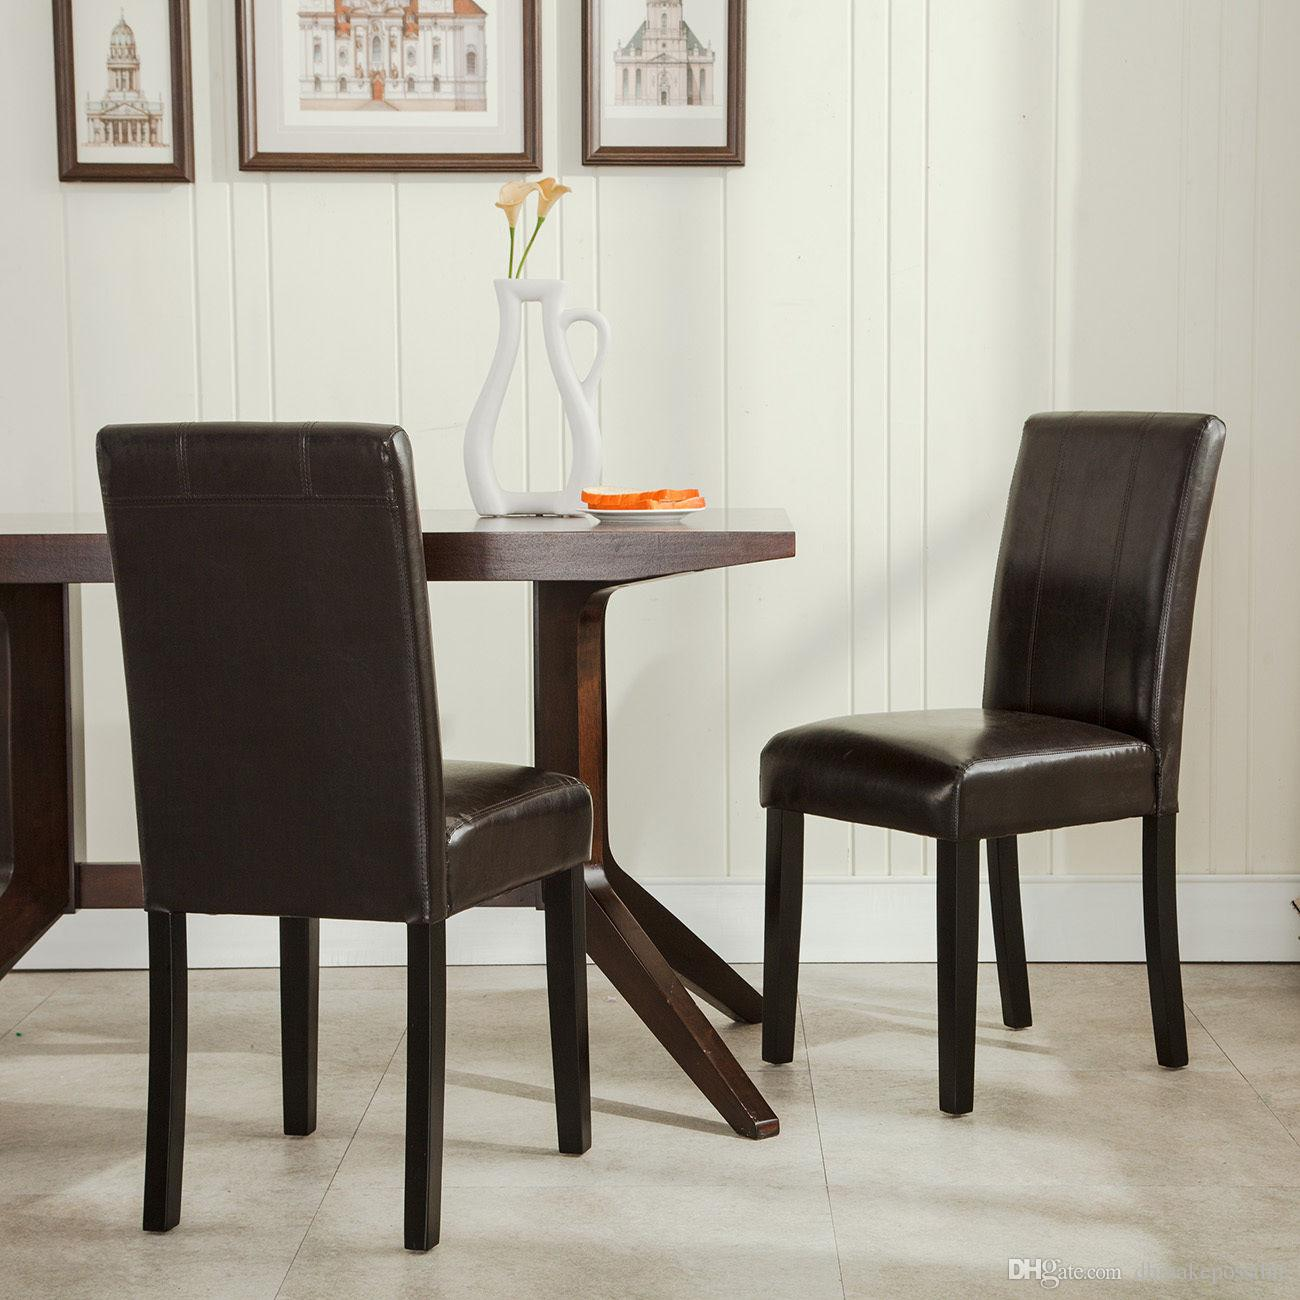 Set Of 2 Elegant Design Furniture Leather Parsons Dining Room Chairs Seat  Brown Furniture Leather Dining Room Online With $66.67/Piece On  Dhmakepossibleu0027s ...